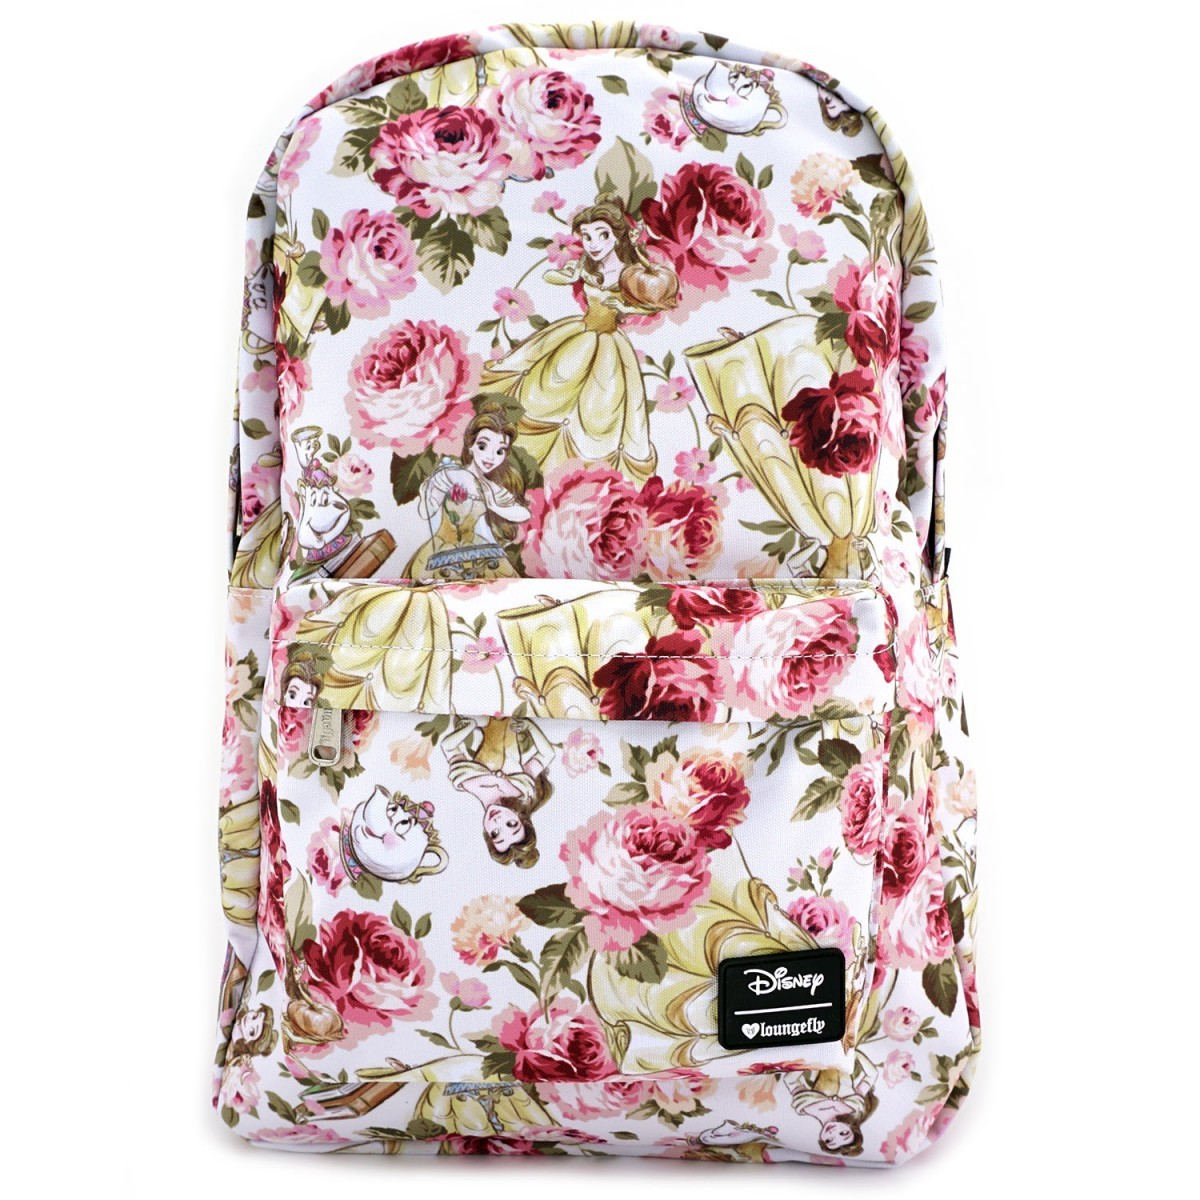 f11a934958a4 Loungefly Disney Belle Floral Backpack image ...